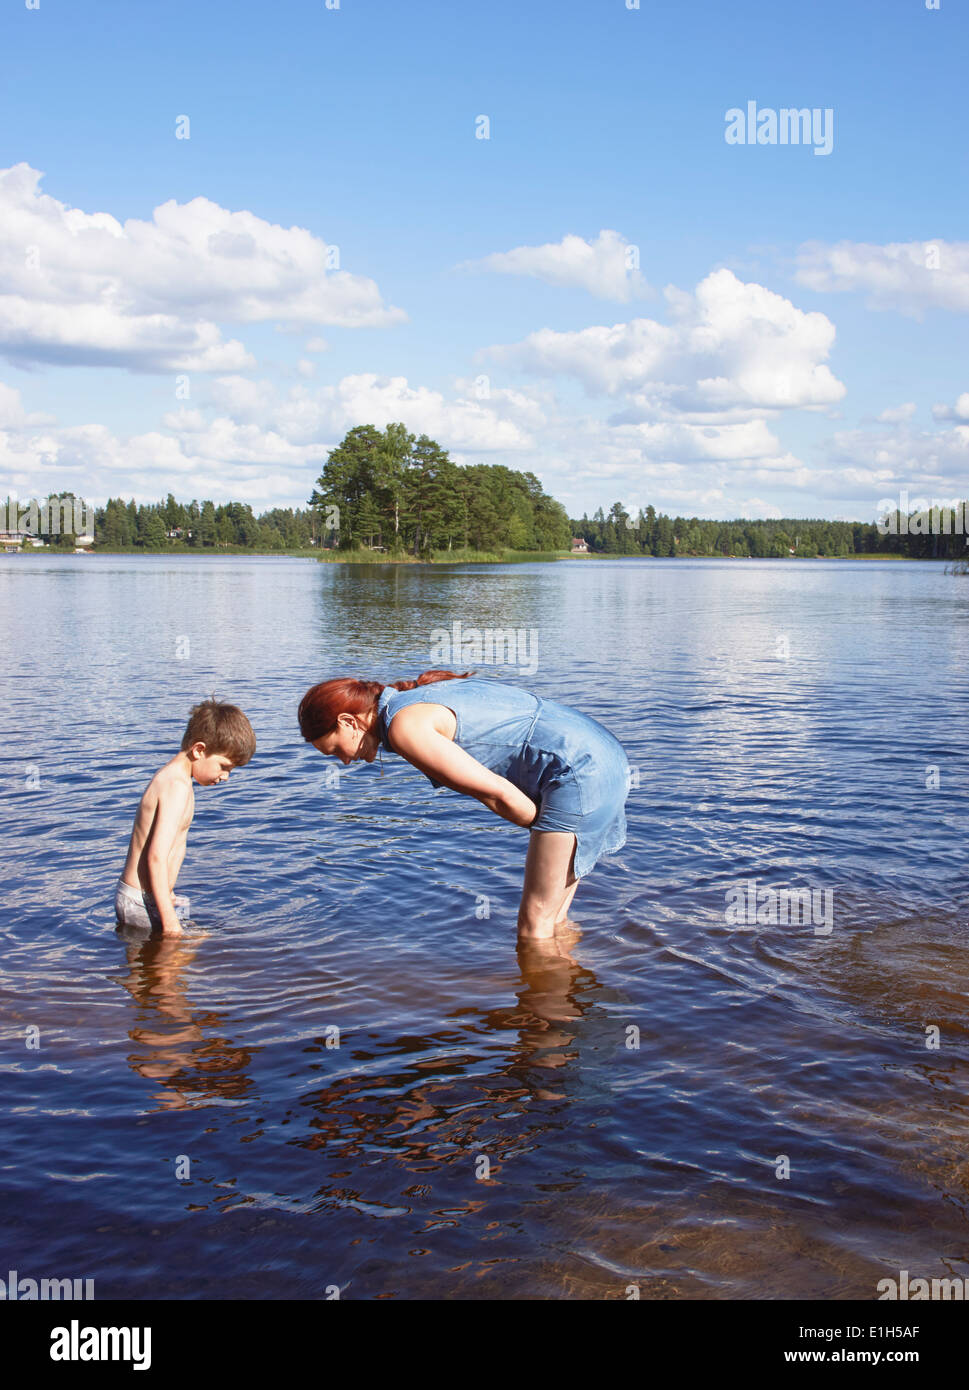 Mother and young son in searching in lake, Gavle, Sweden - Stock Image